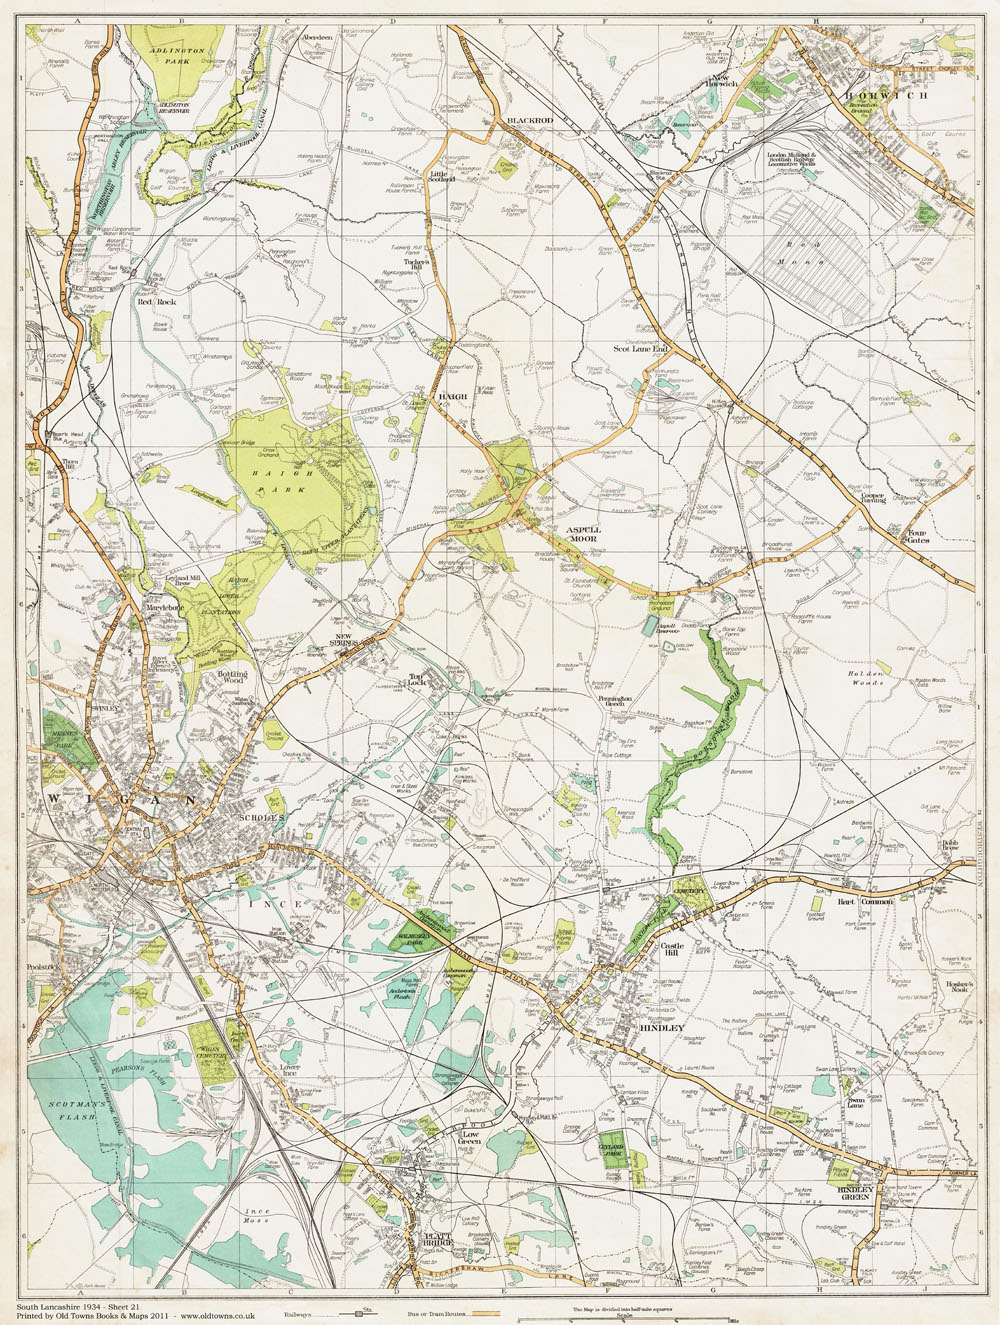 An old map of the Wigan east area Lancashire in 1934 as an